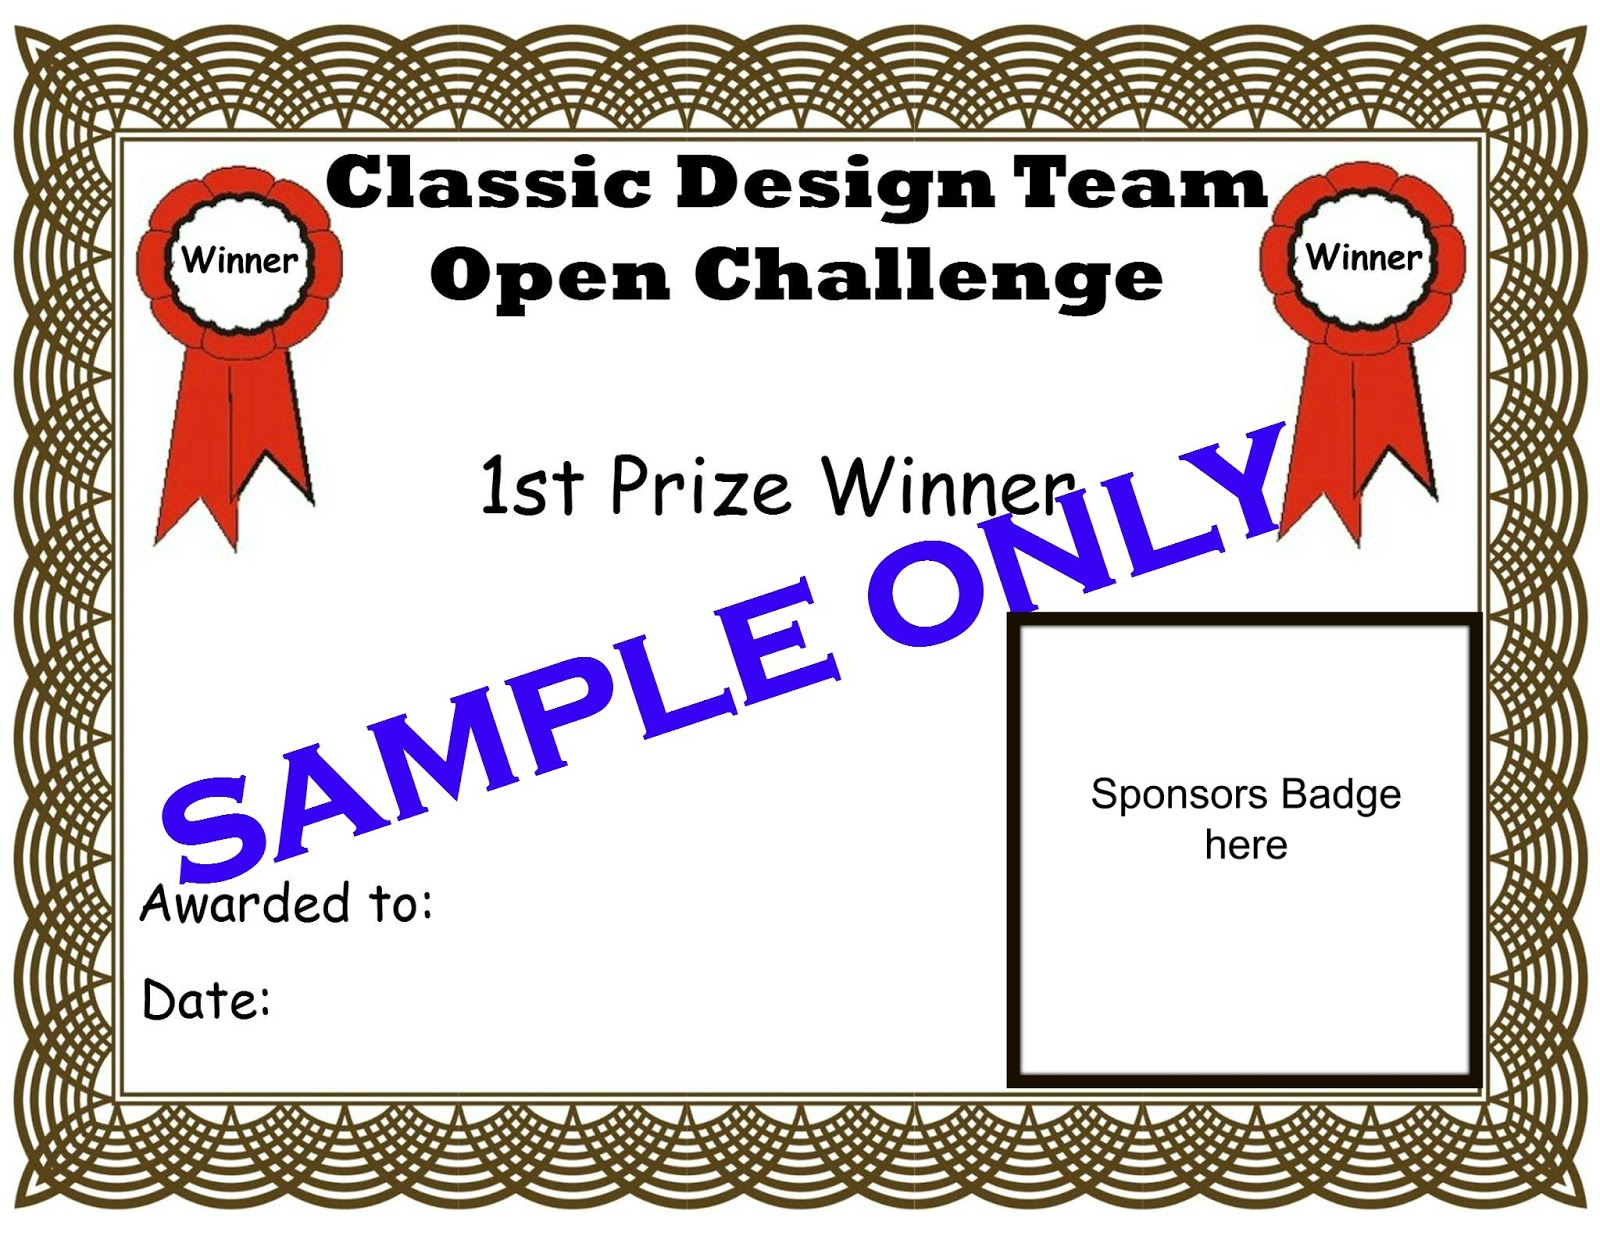 1st prize certificate template gallery templates example free magnificent 1st prize certificate template gallery resume ideas 1st prize certificate template images templates example free xflitez Choice Image